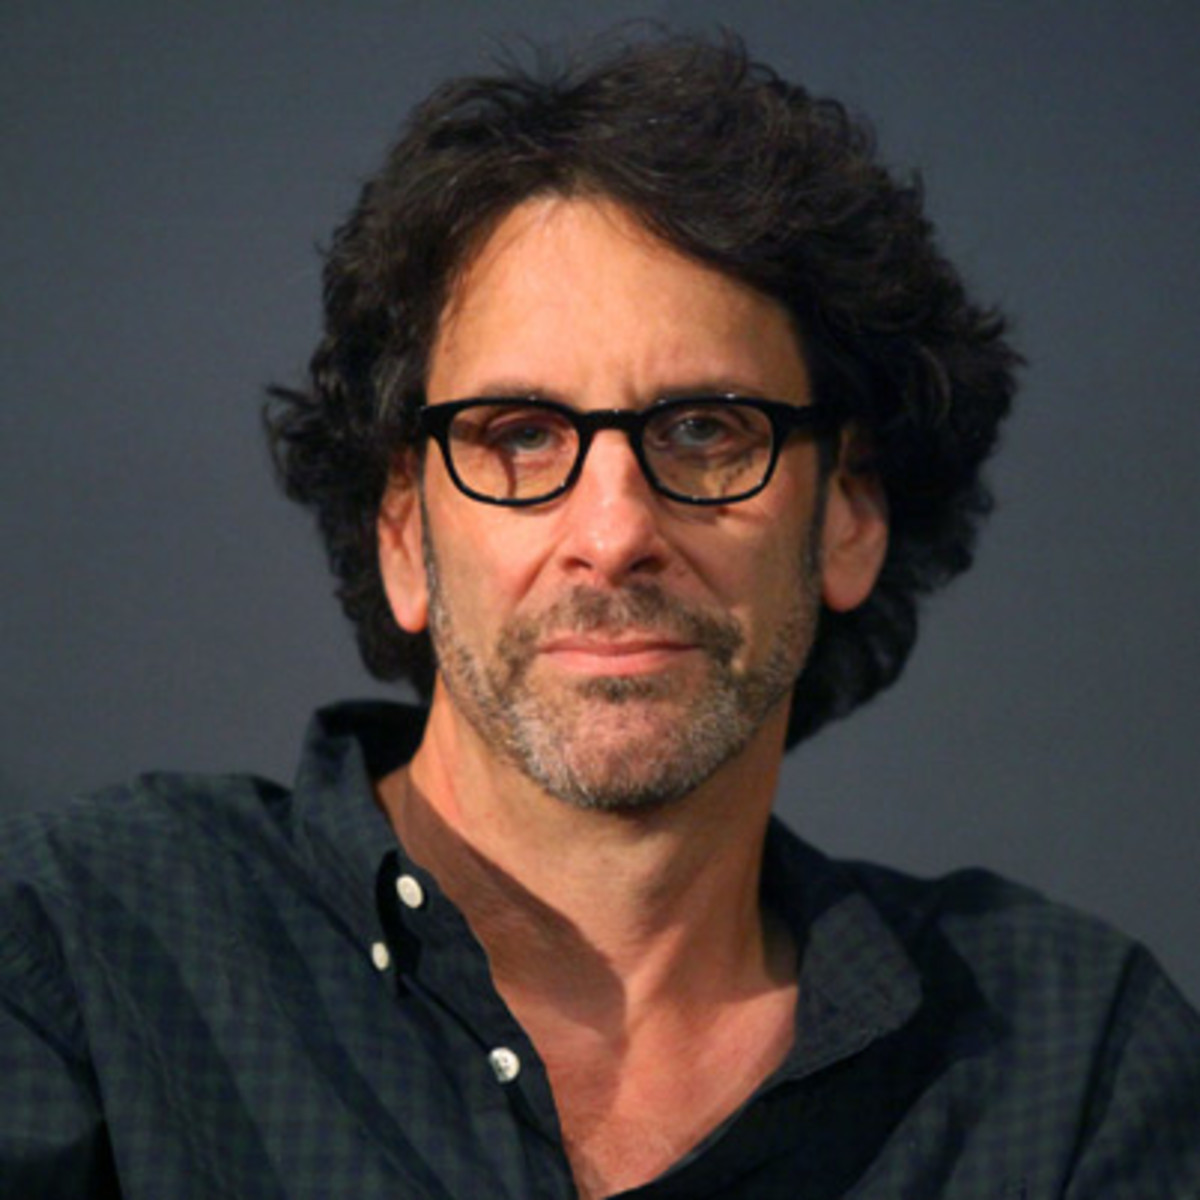 coen brothers biography essay My brother sam is dead essay my brother,  a biography america 's richest man, sam walton, was  the opening sequence of the coen brothers.